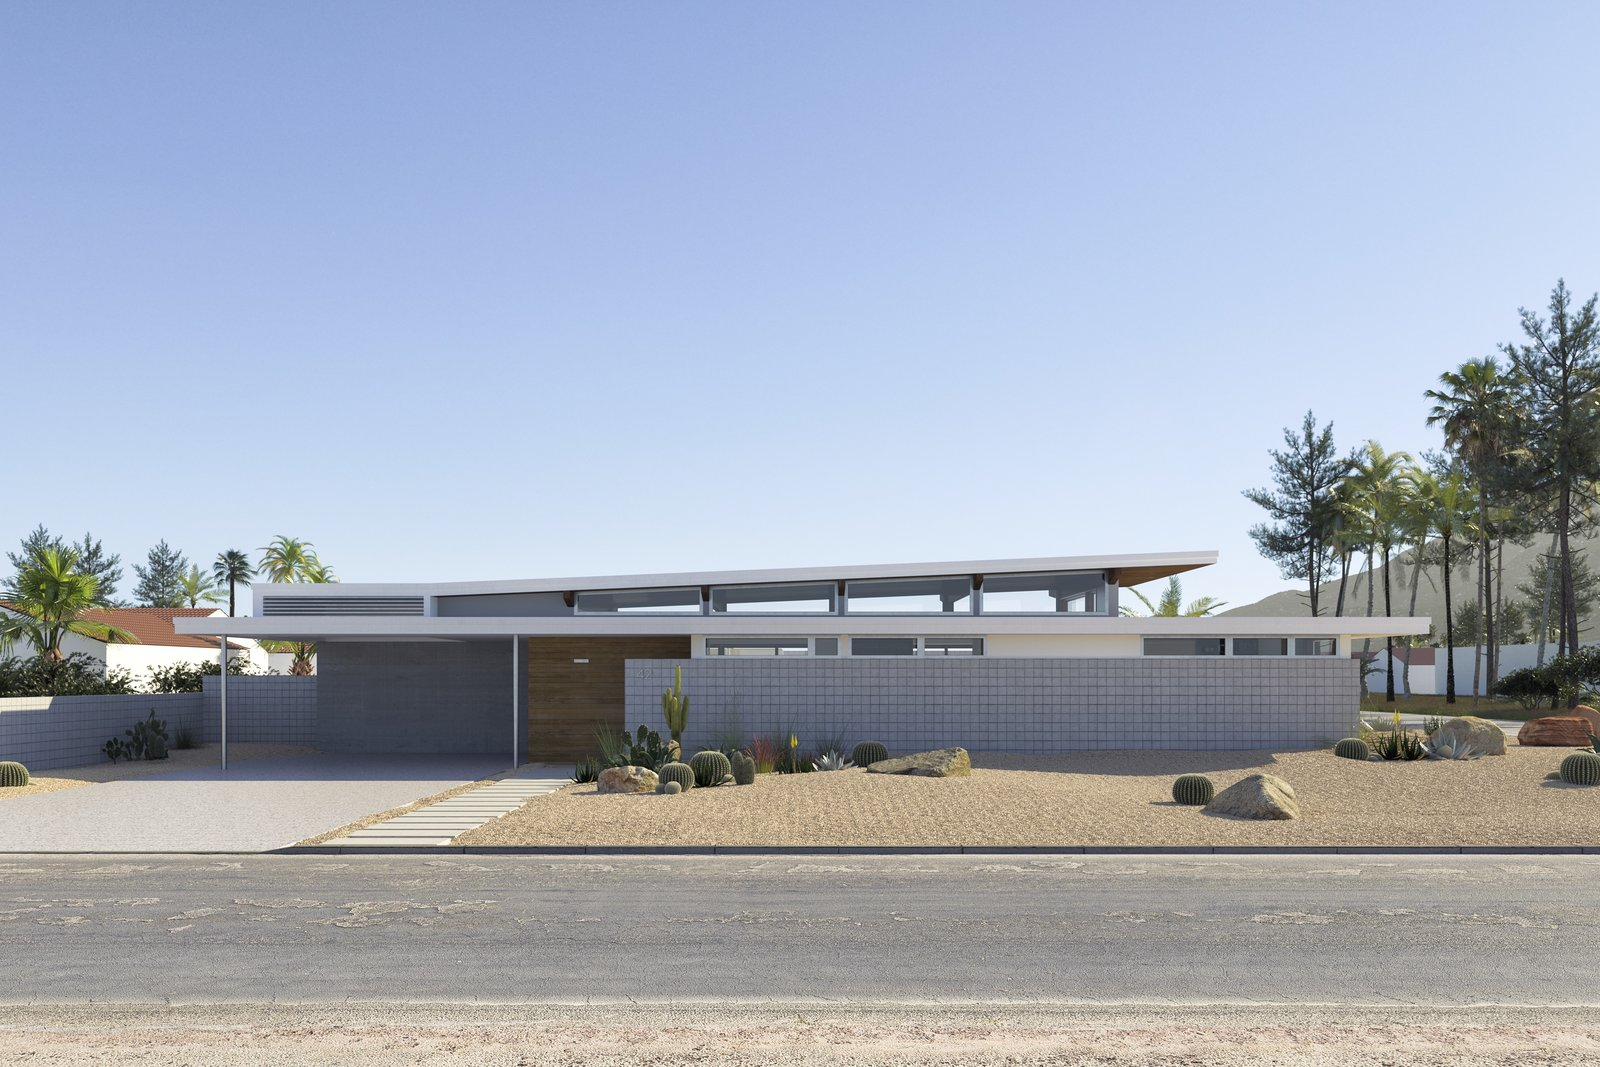 Articles about green affordable prefab home debuts palm springs on Dwell.com